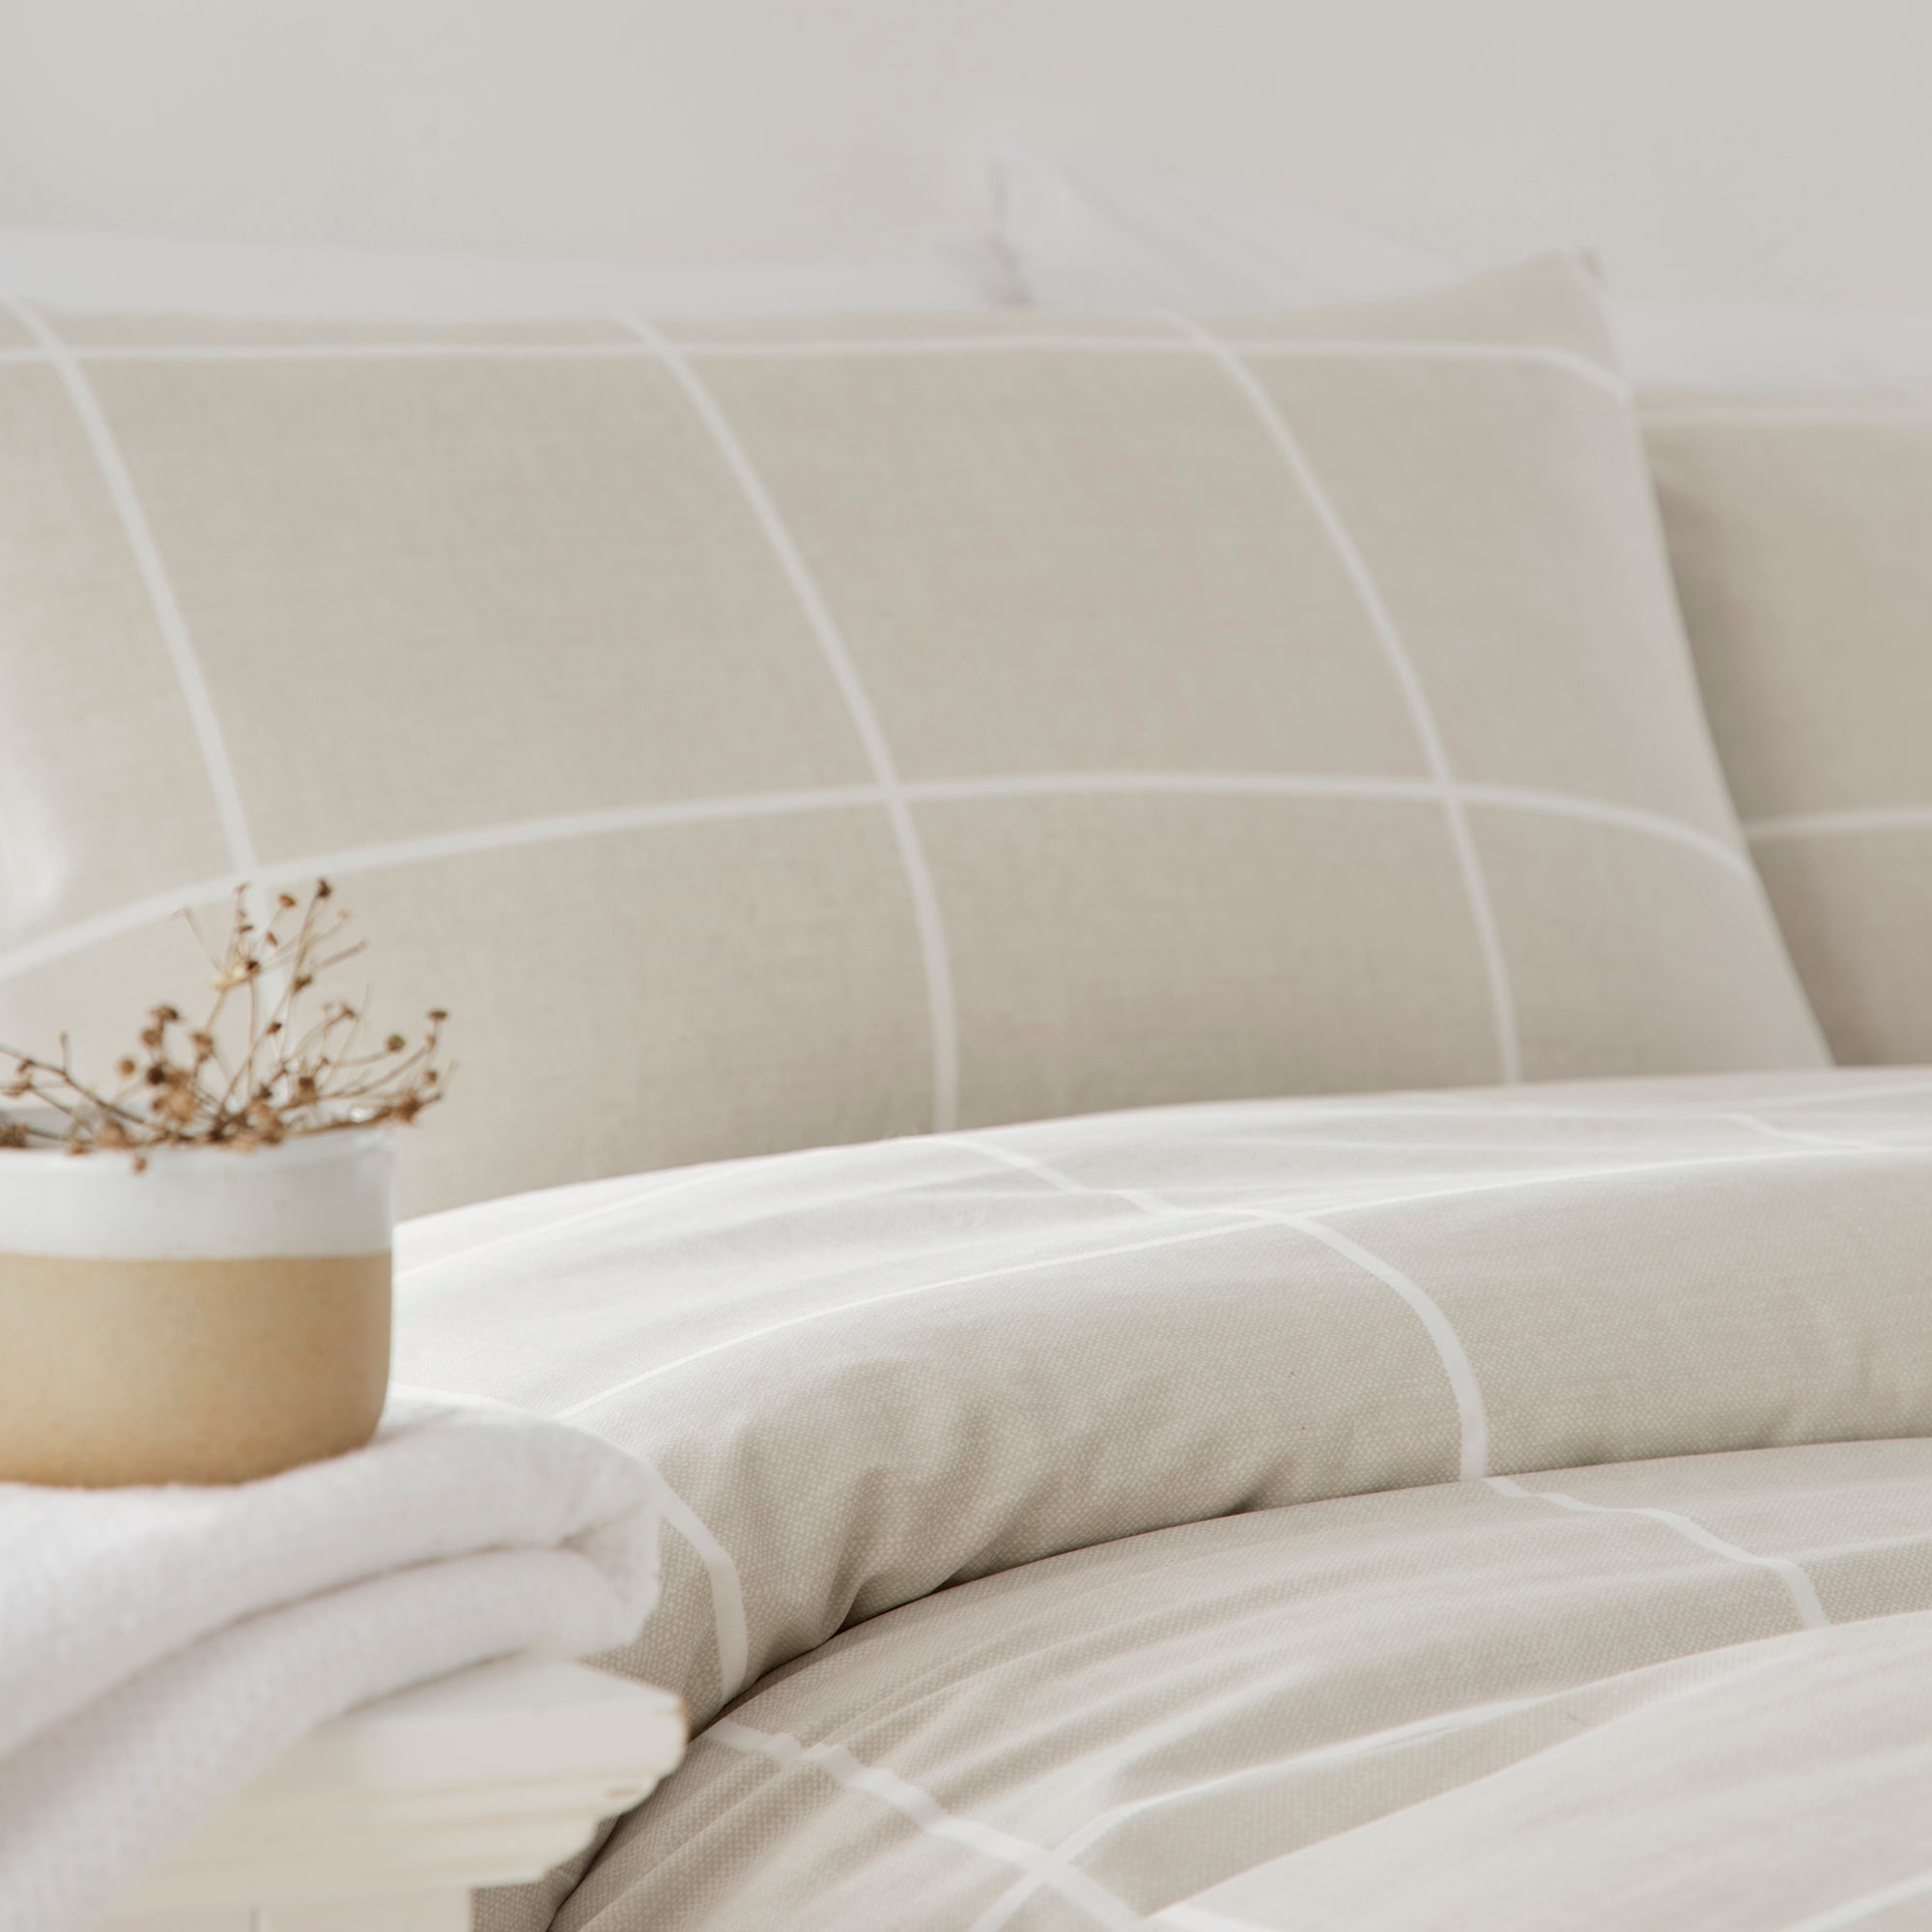 Chiswick - Eco-Friendly Duvet Cover Set in Natural by Drift Home